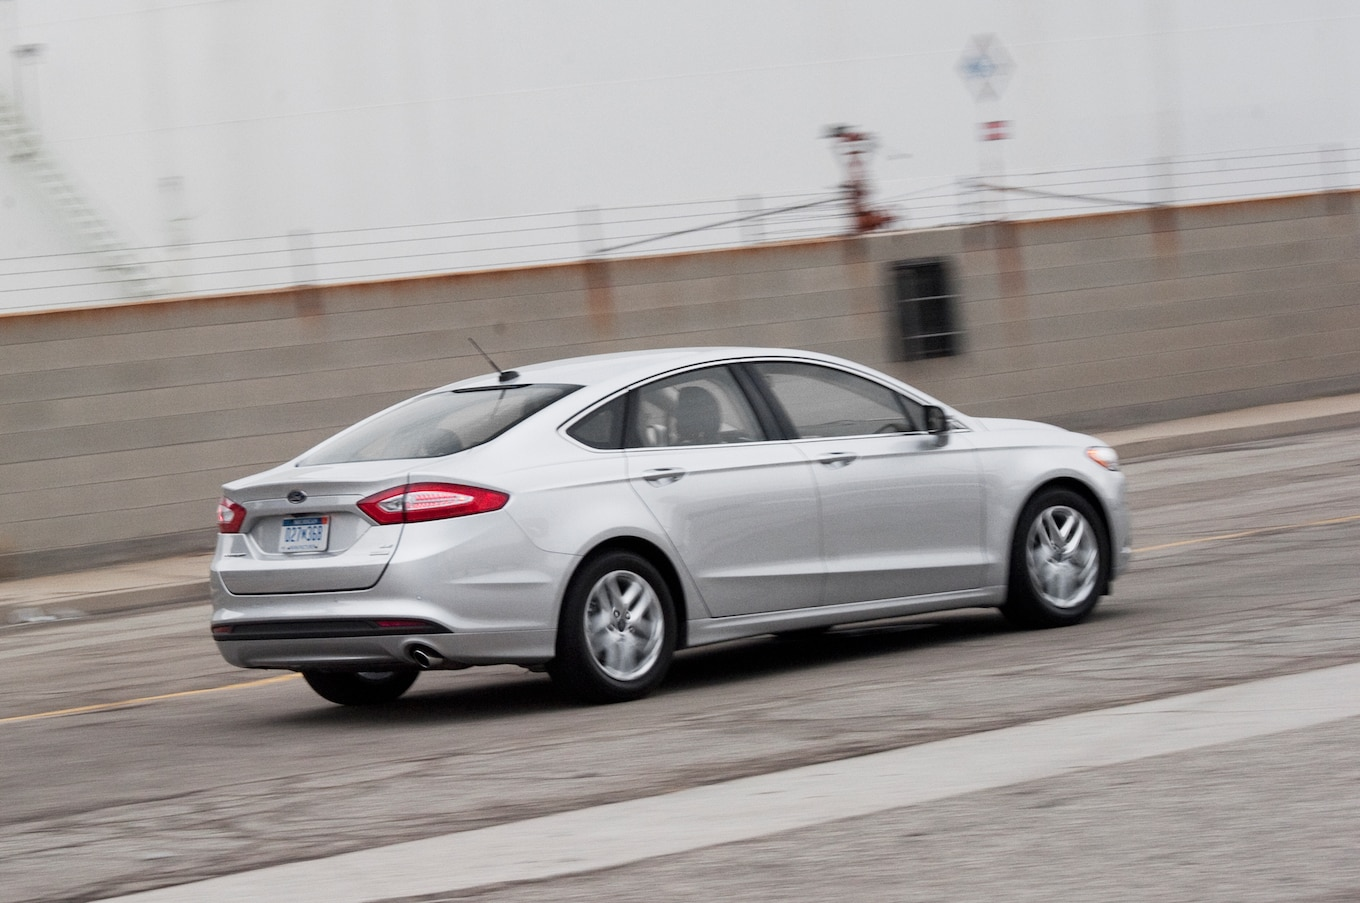 2013 ford fusion 1.6l ecoboost automatic first test - motor trend